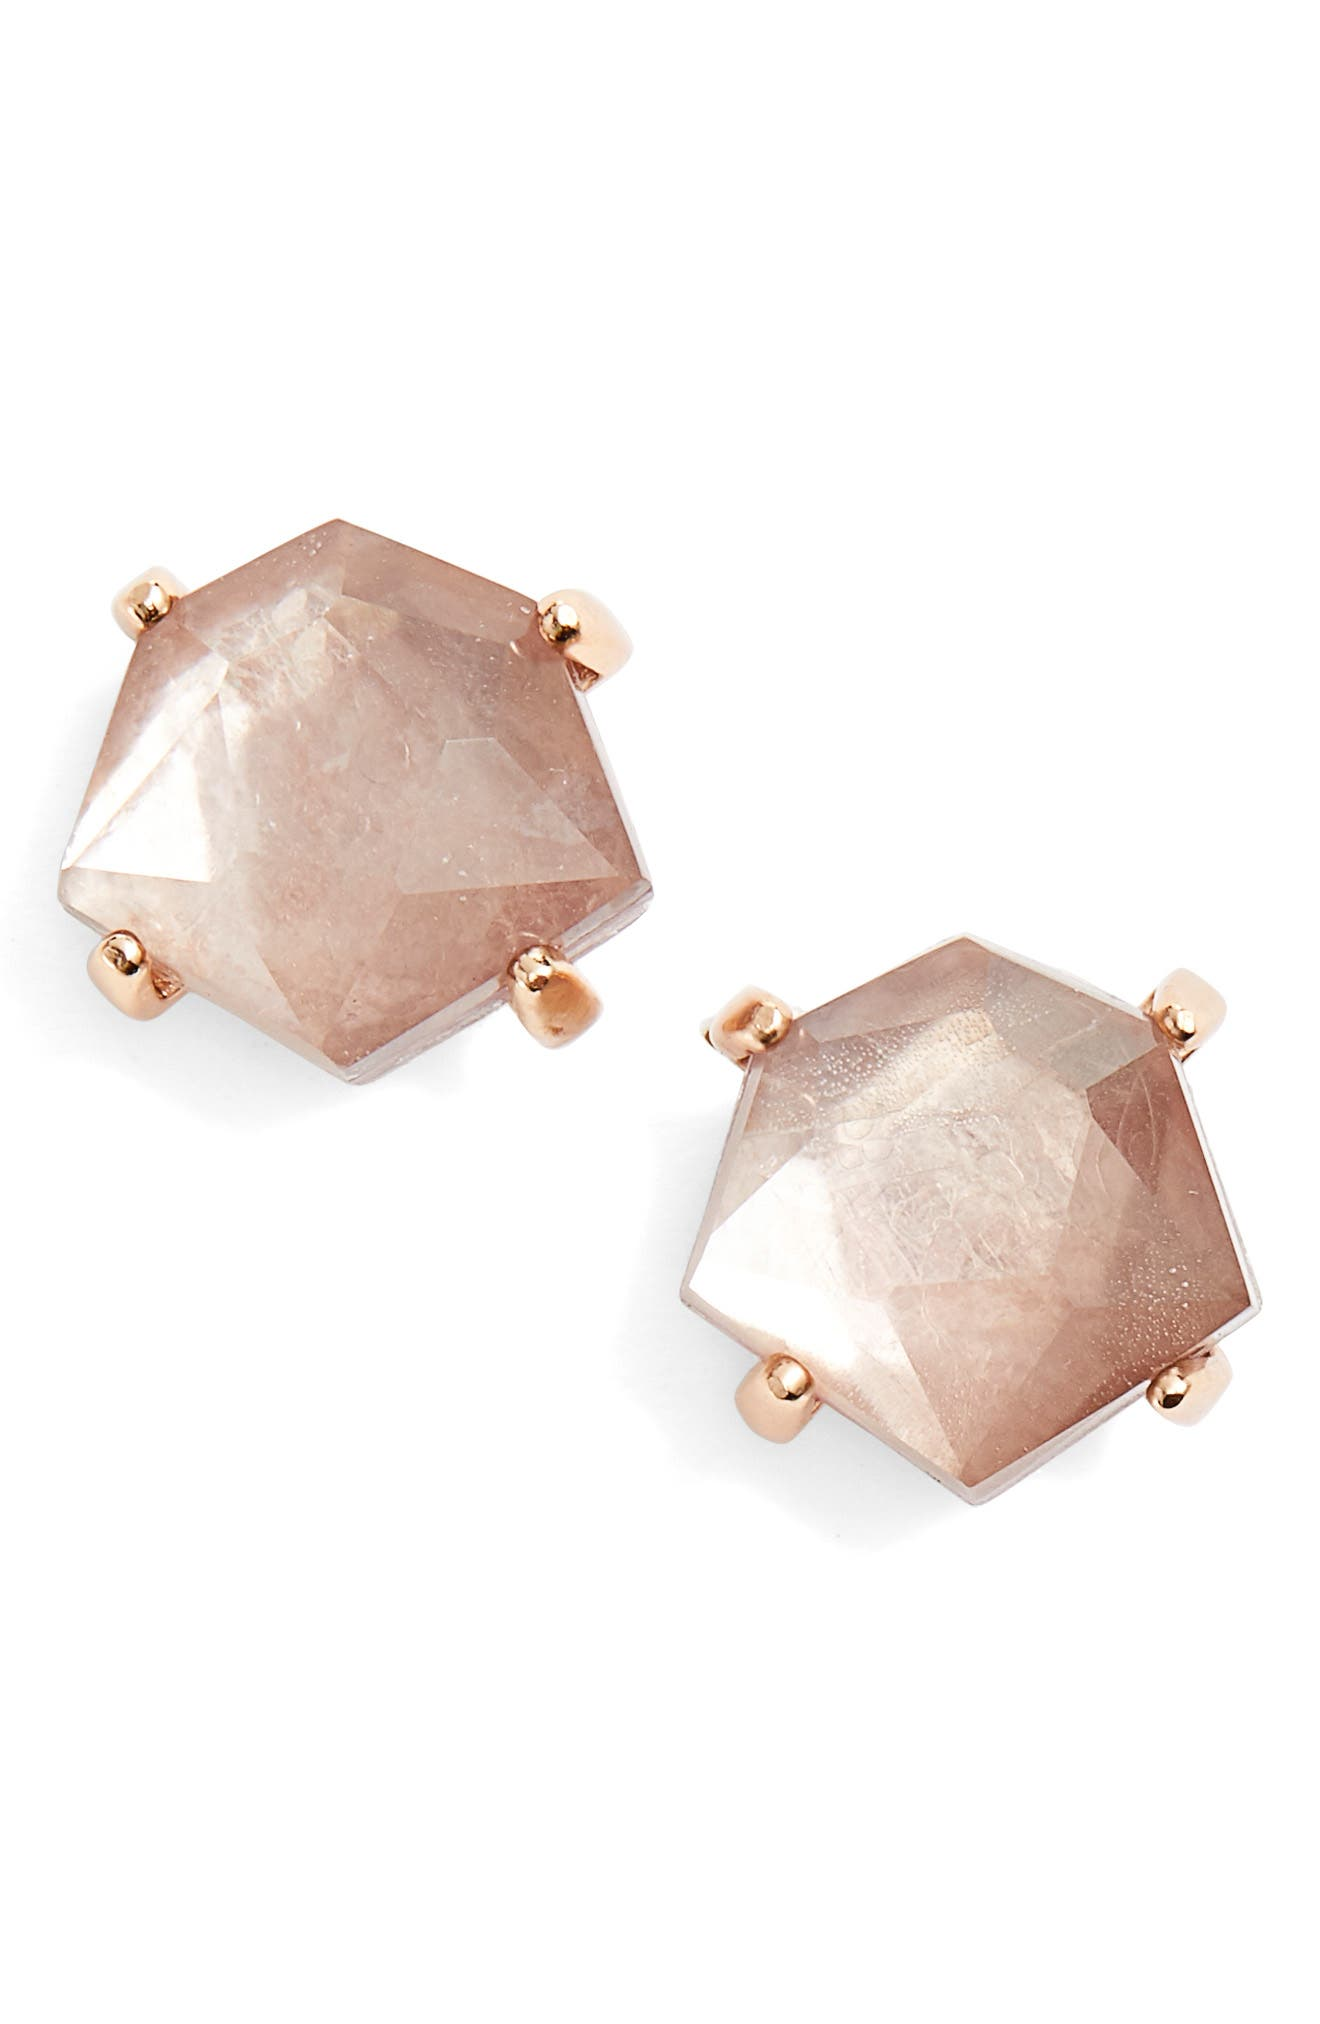 Ellms Stud Earrings,                         Main,                         color, 200